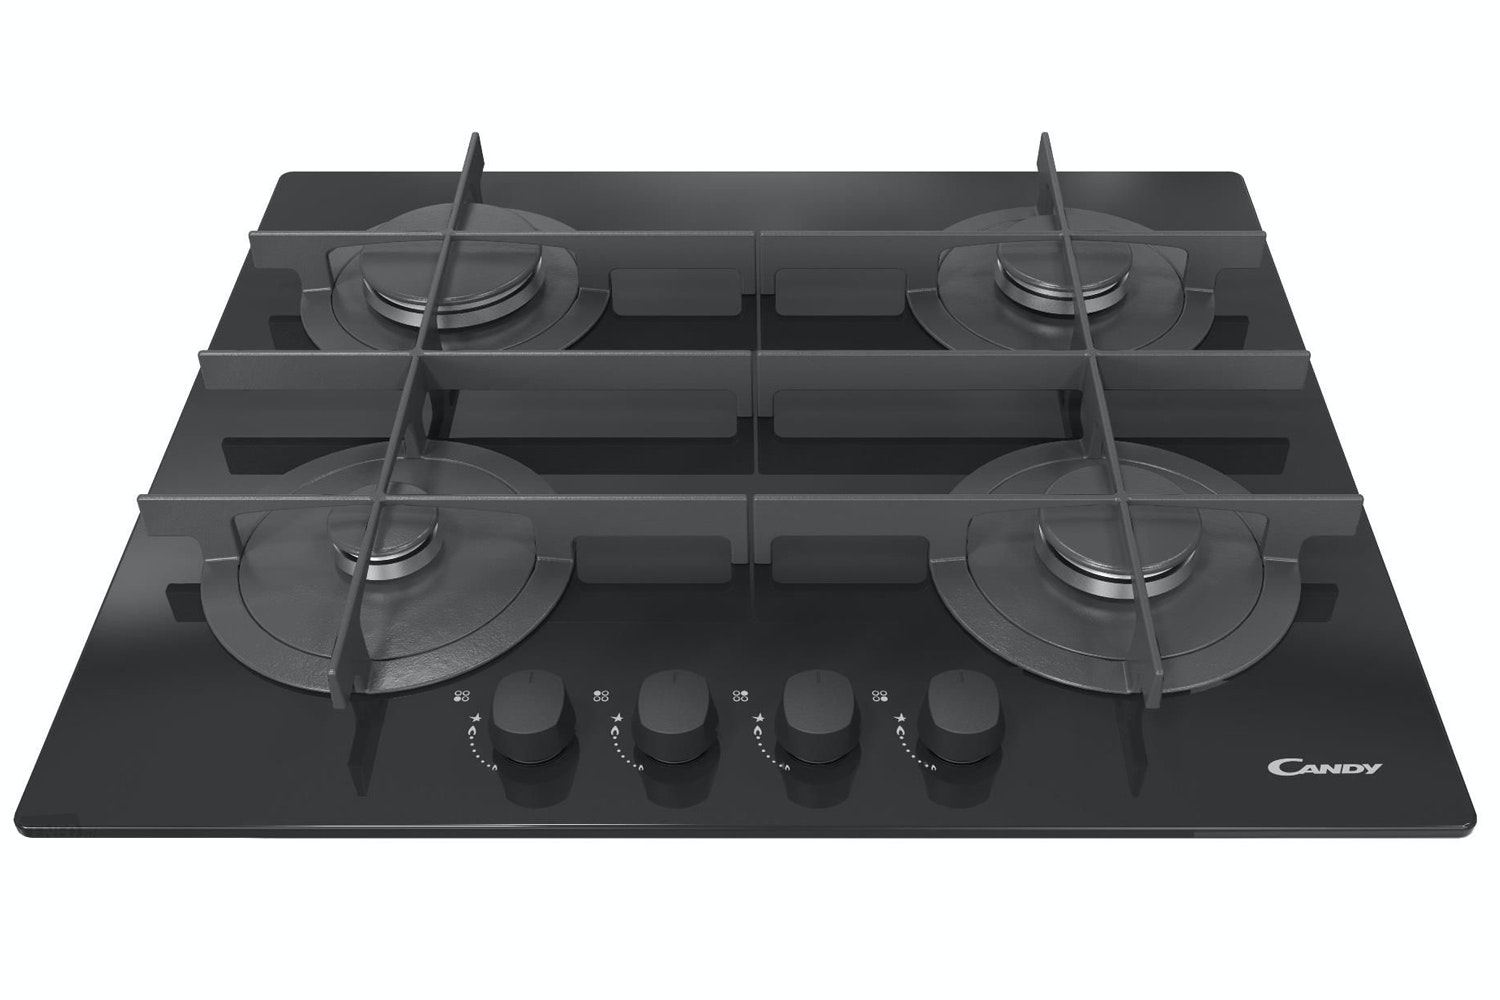 Candy 60cm 4 Burner Gas Hob | CVG64STGN